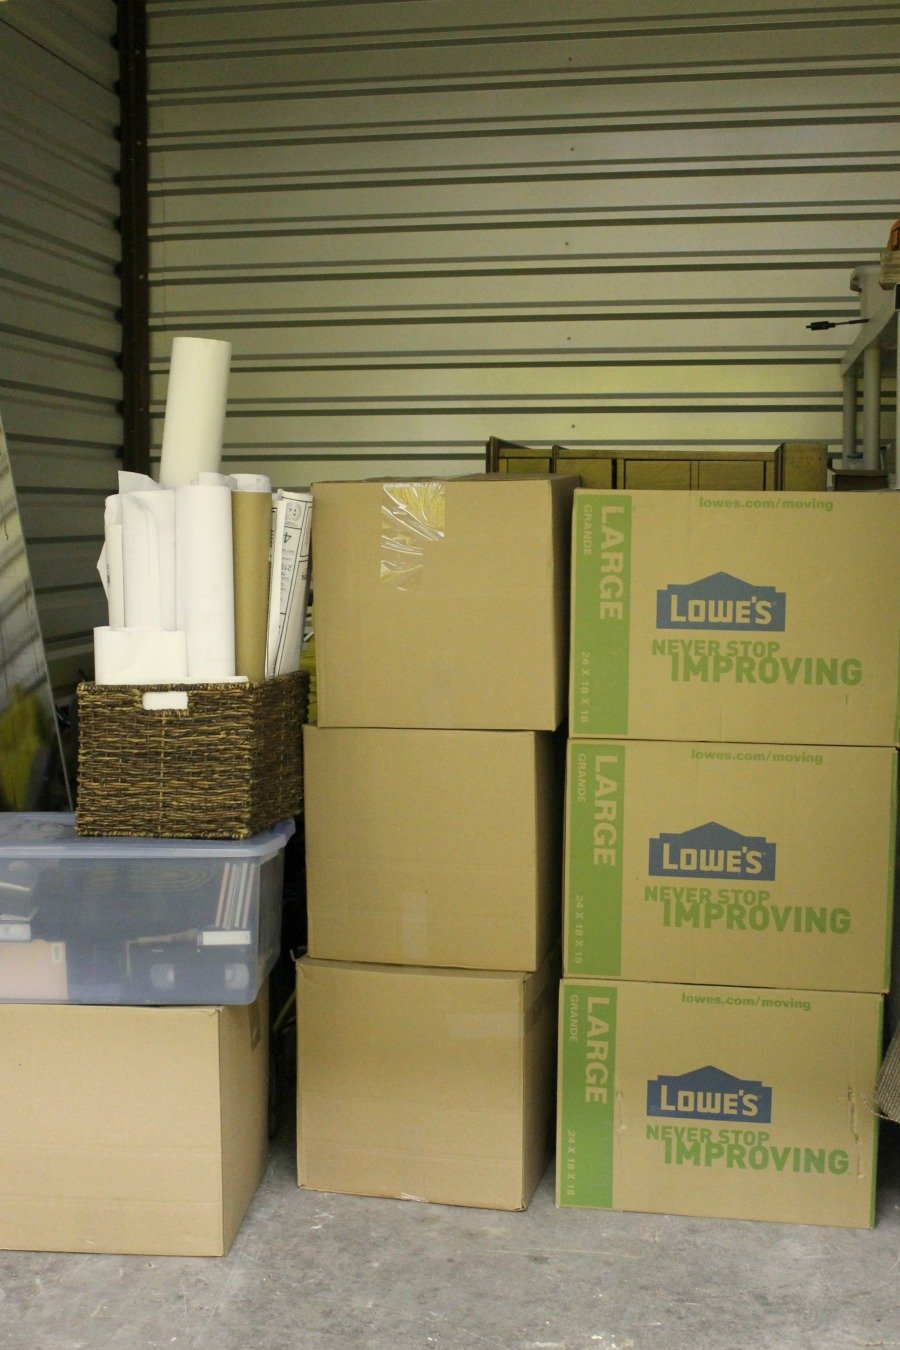 21 Things to Do Before Selling Your Home - Move clutter to a storage unit.